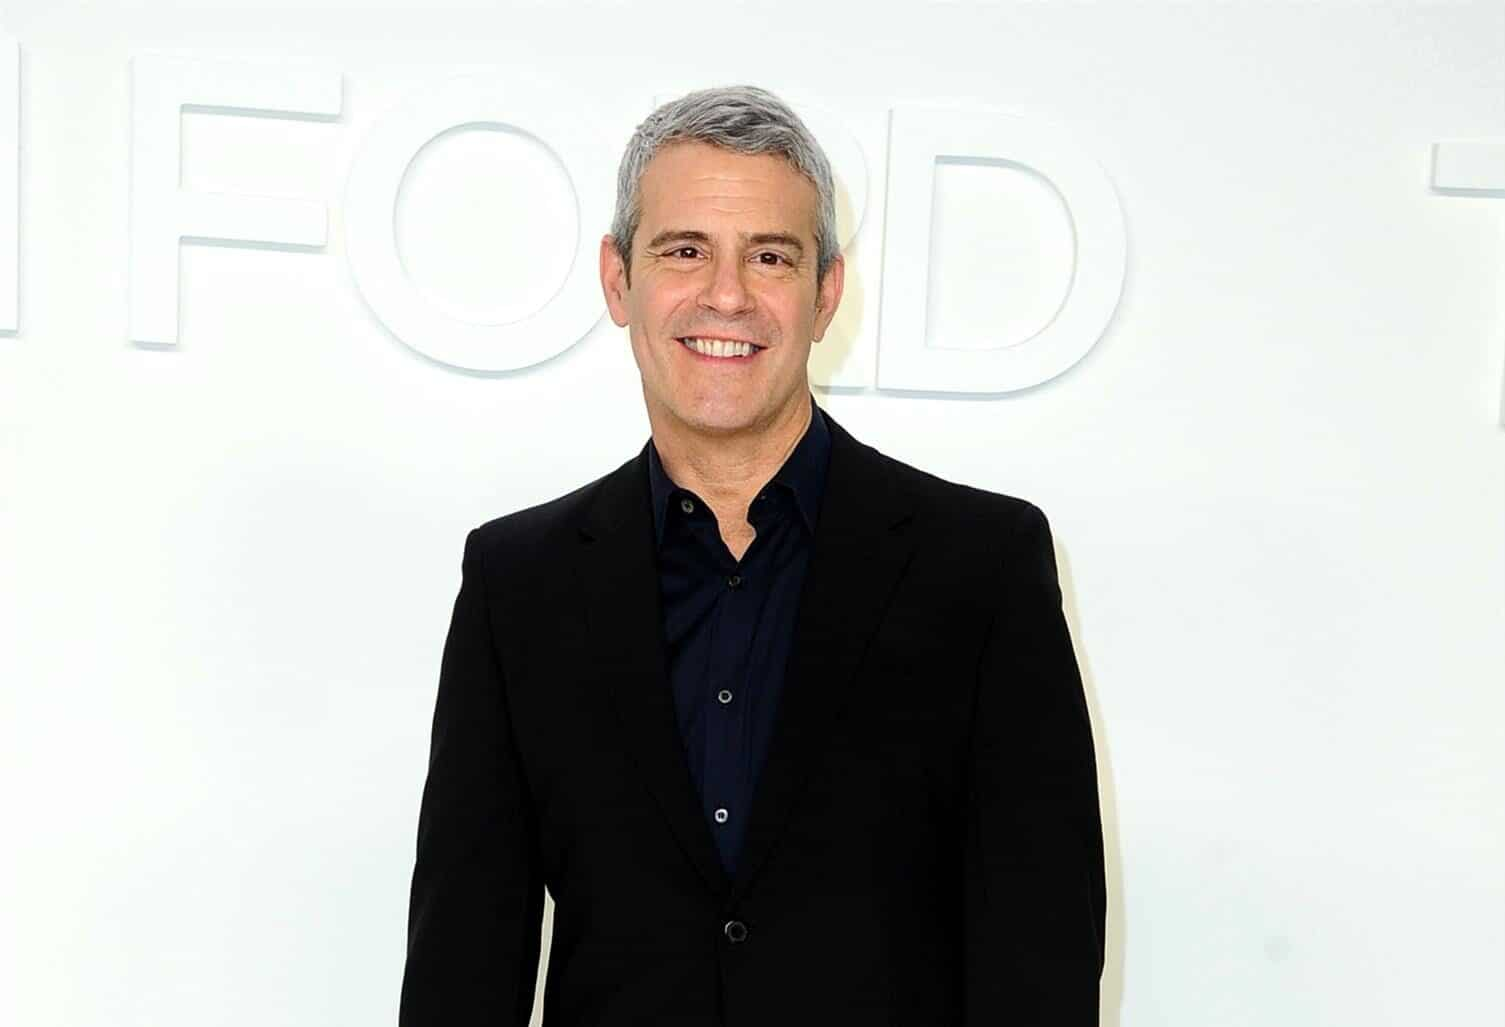 Andy Cohen Reveals Which Housewife He Changed His Opinion About After the Reunion, Plus He Shares What Housewives He Wishes 'Stuck Around'